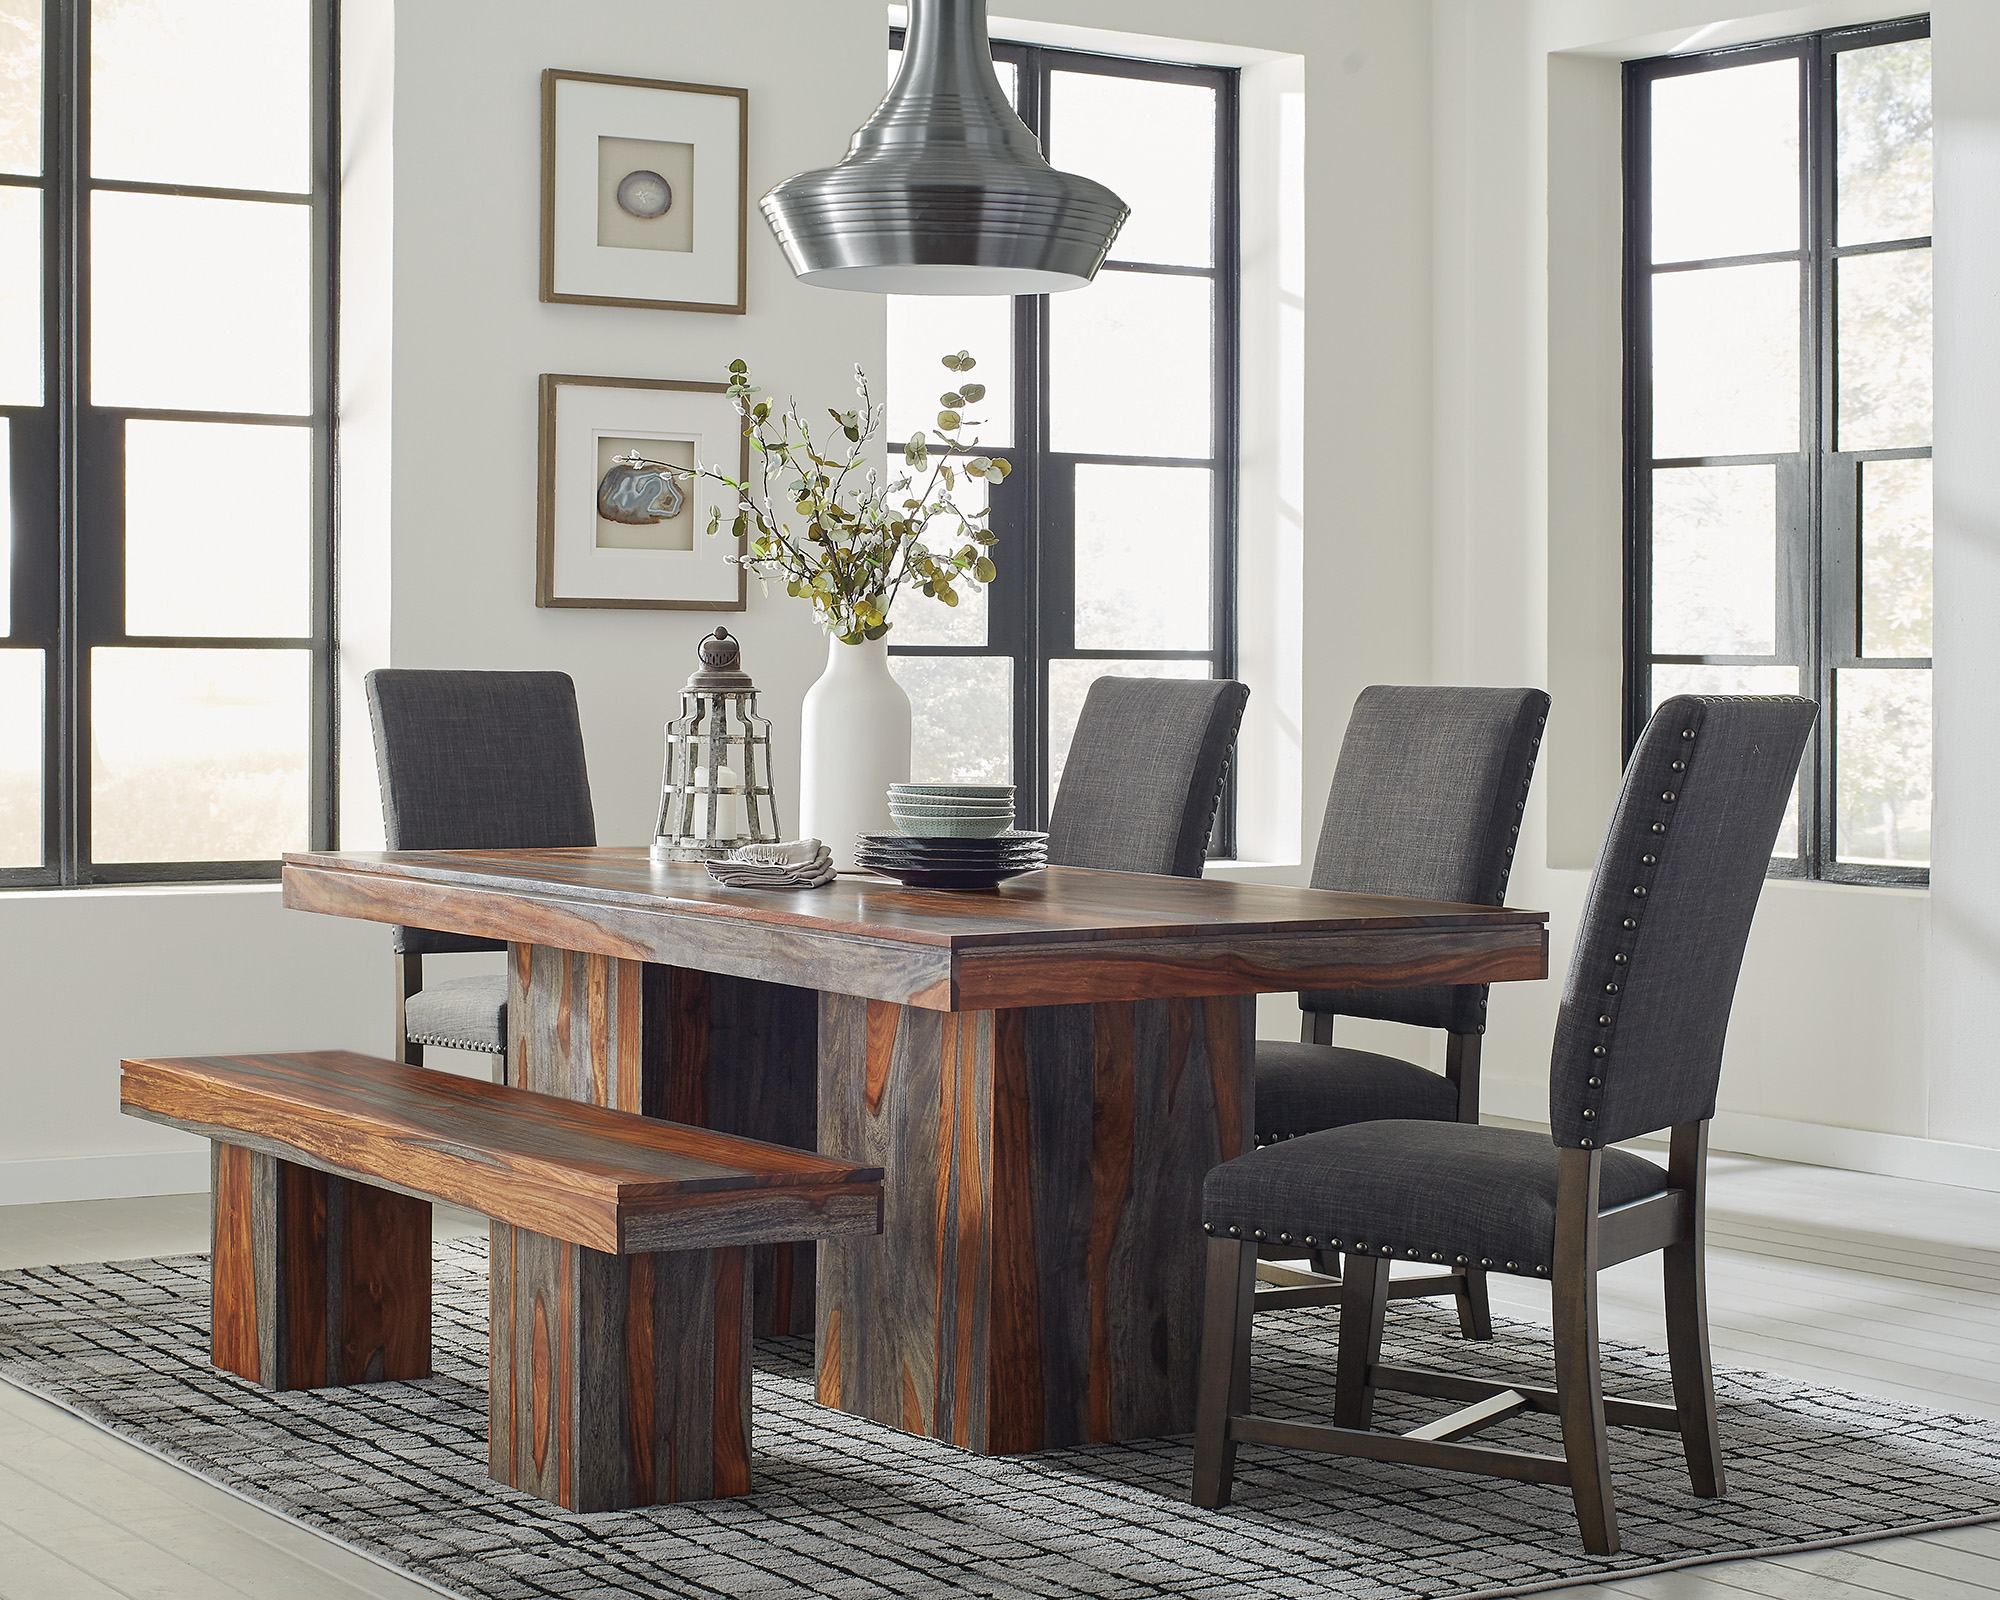 Binghamton Rustic Dining Table Set With